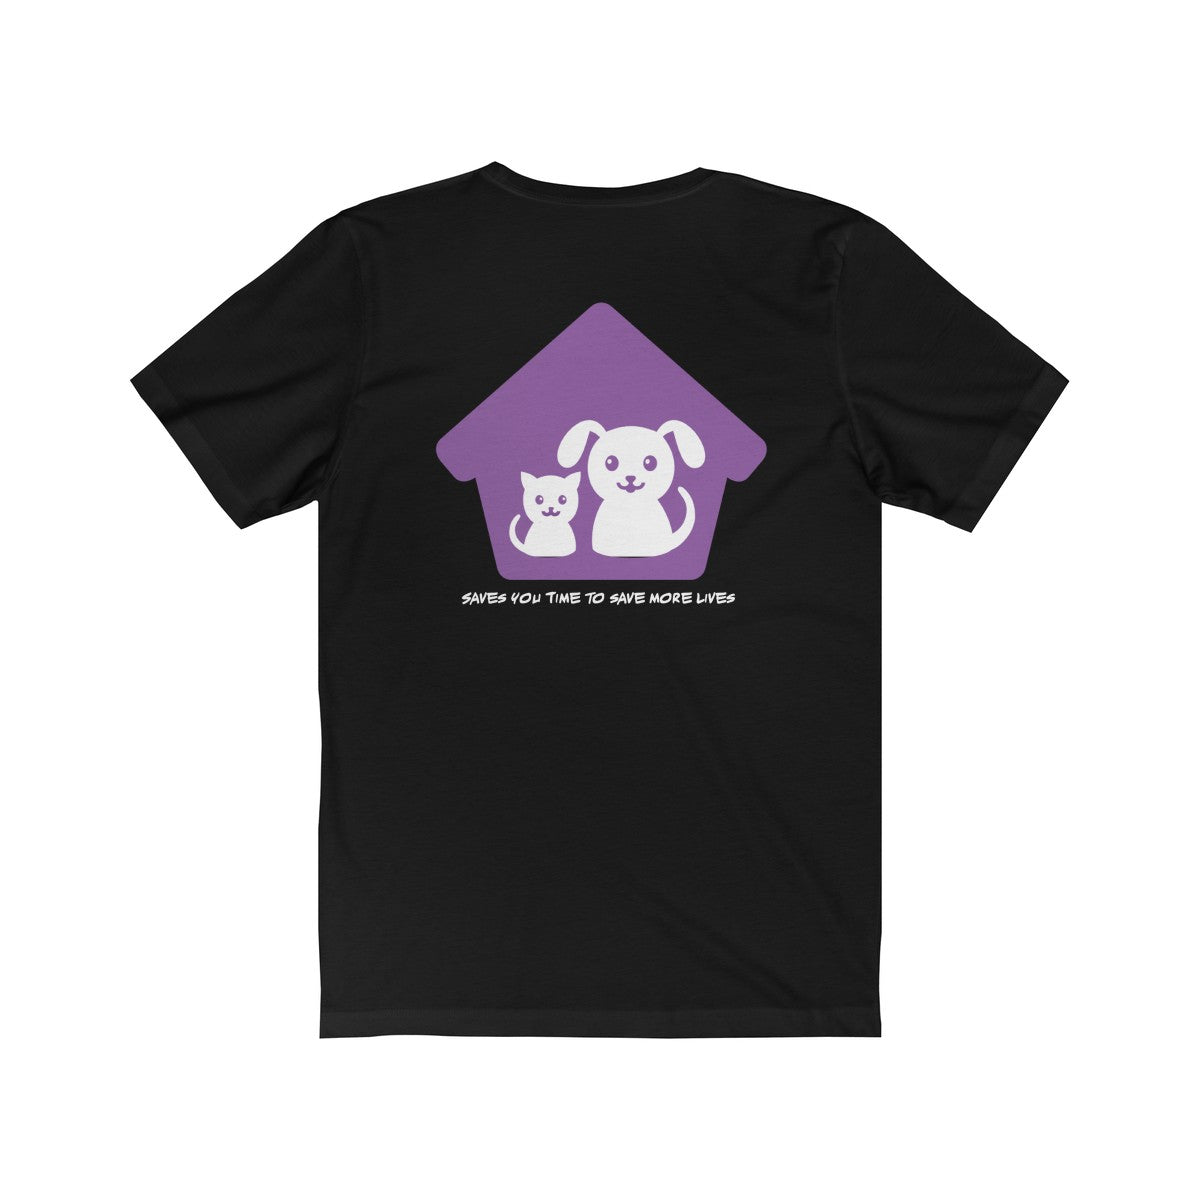 Expo Tee Paws Up - Marcin - Allthingsfrenchie LLC